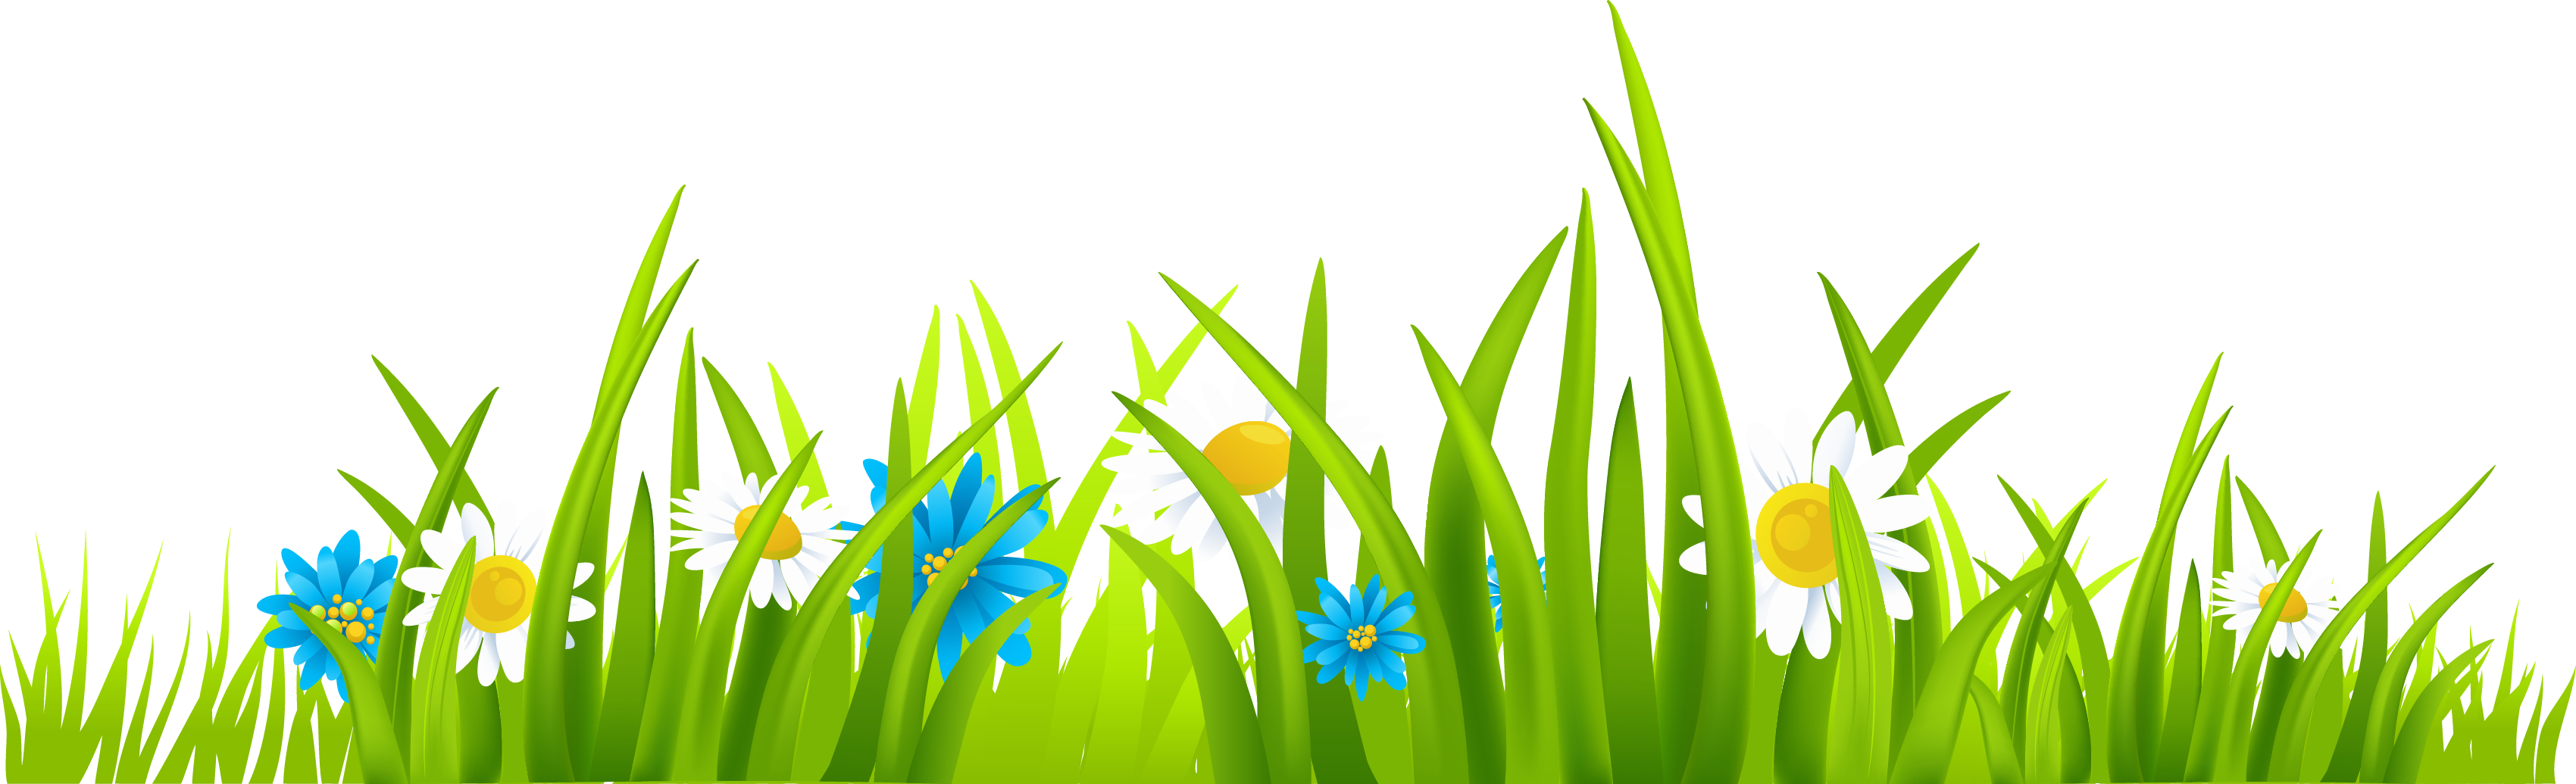 Grass clipart png format. Clip art free images